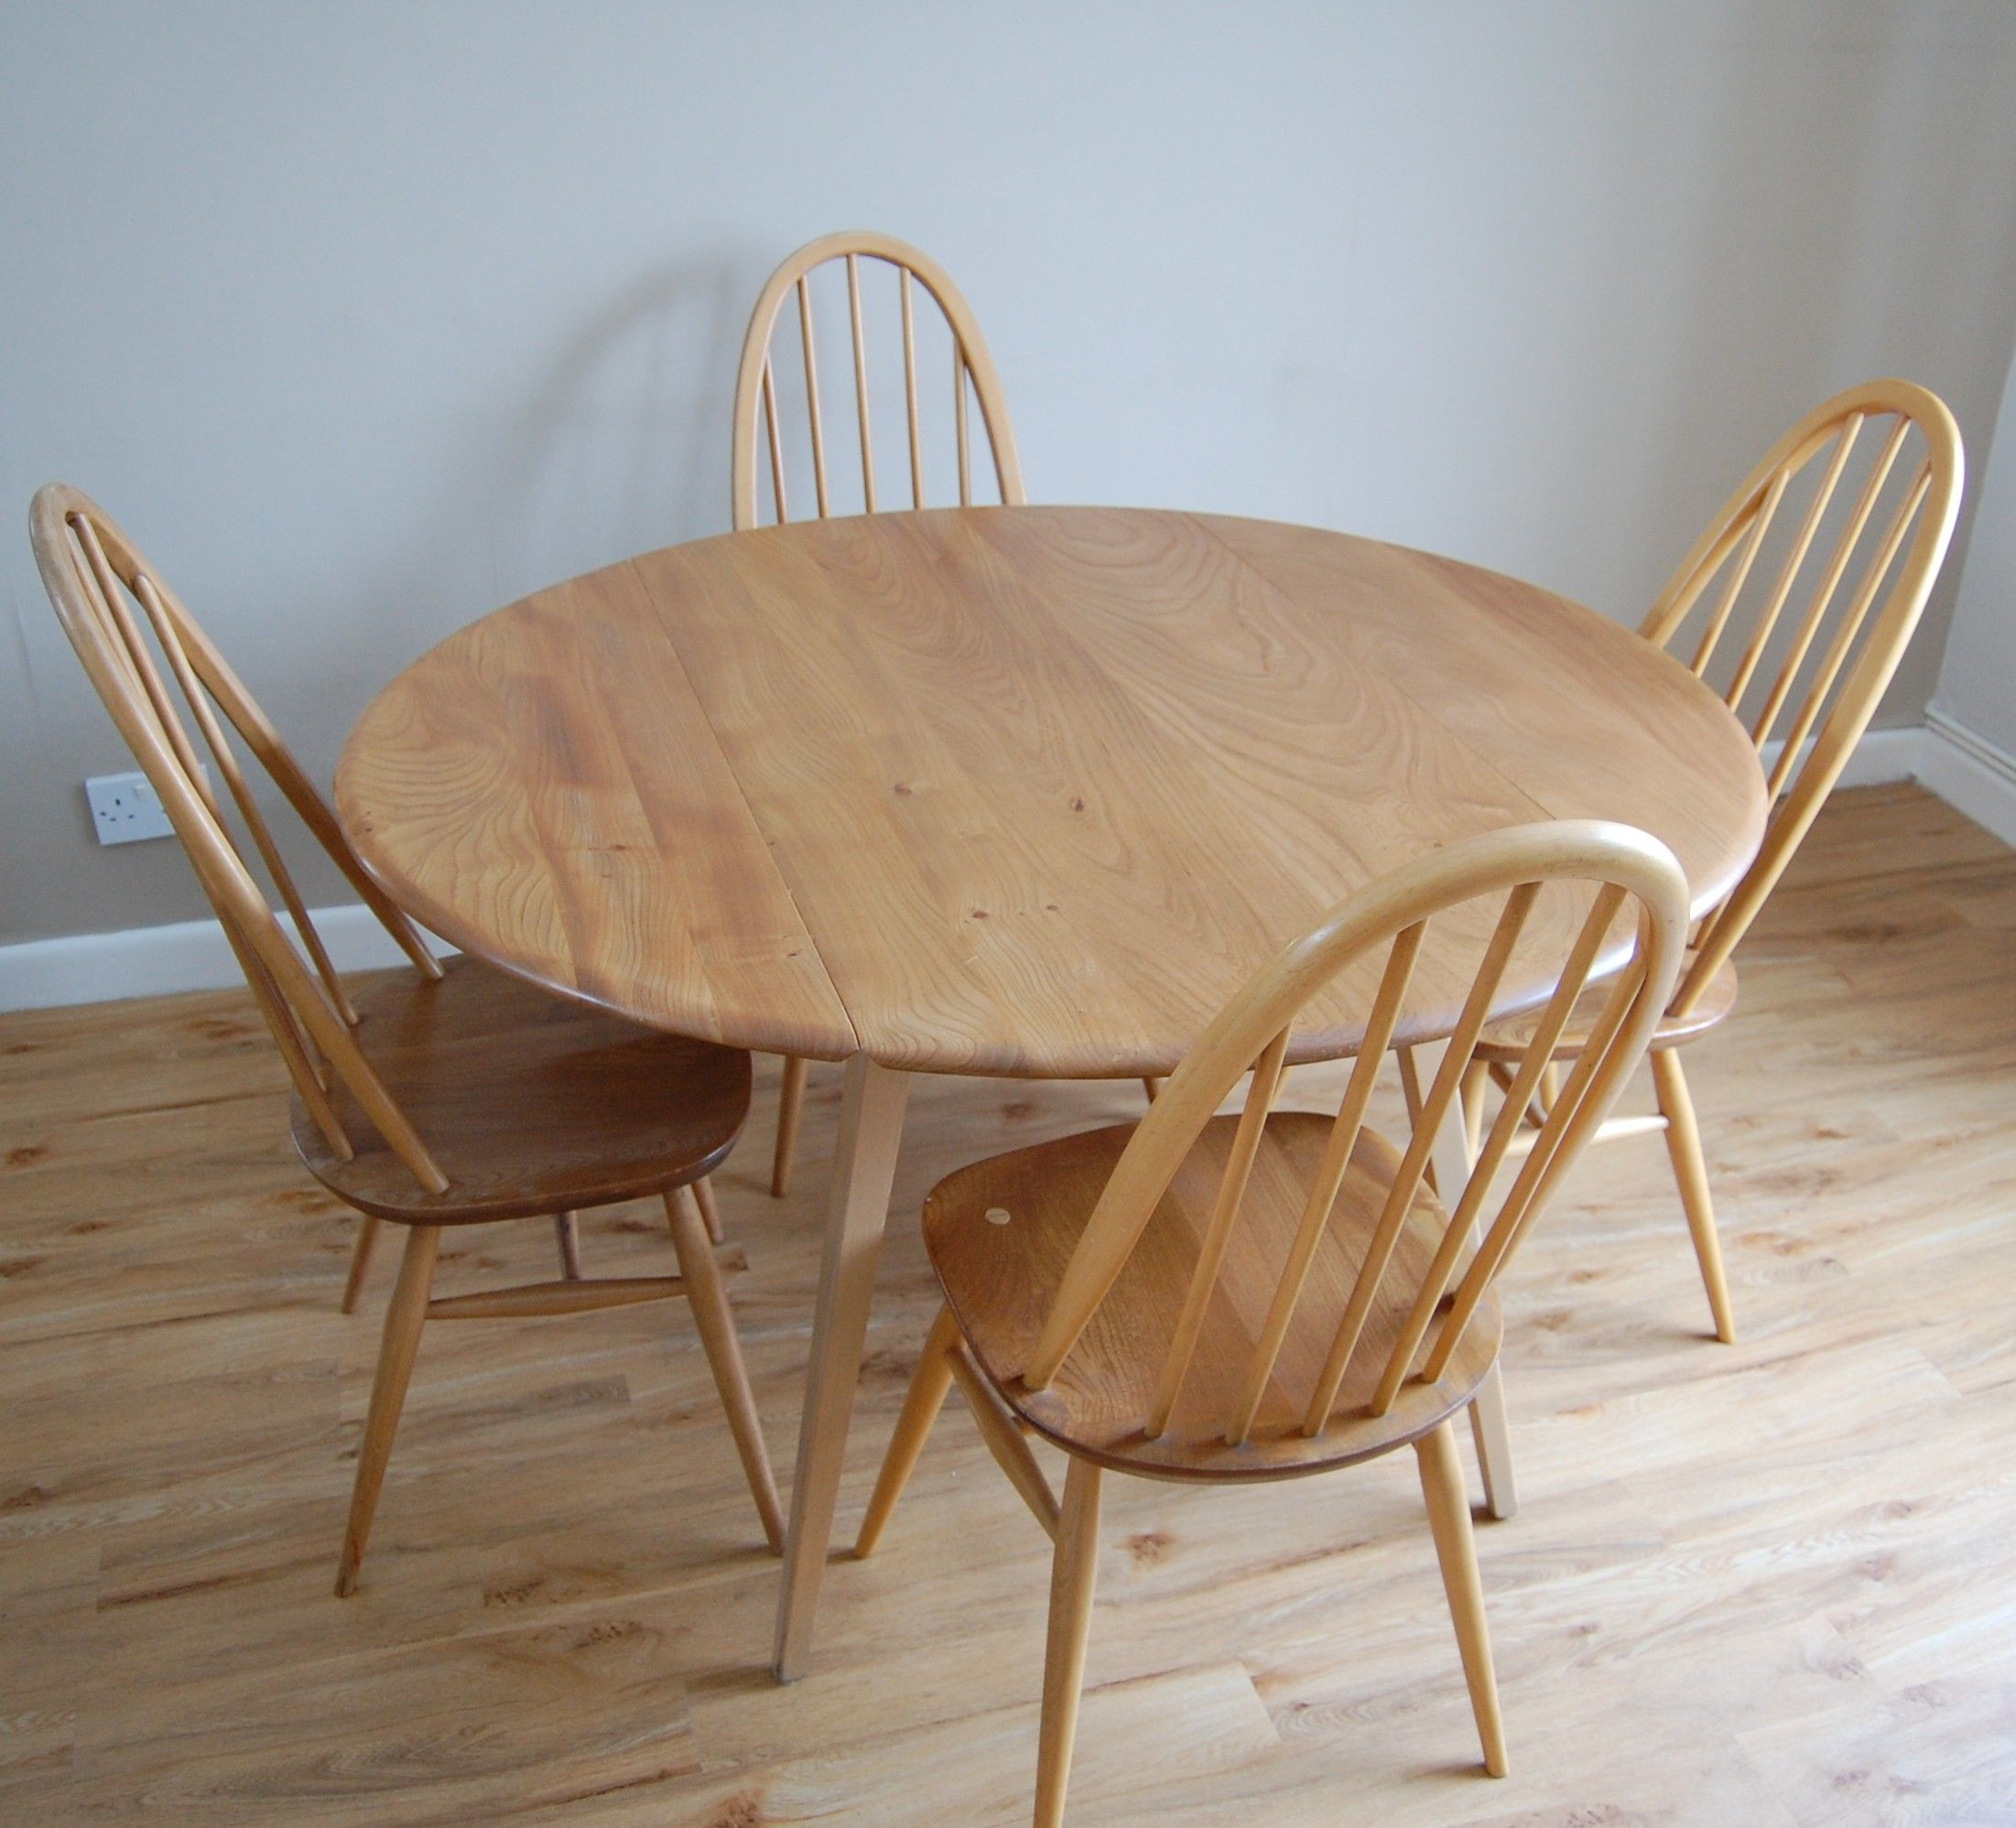 Vintage retro ercol drop leaf round dining kitchen table ebay - Round Ercol Drop Leaf Table